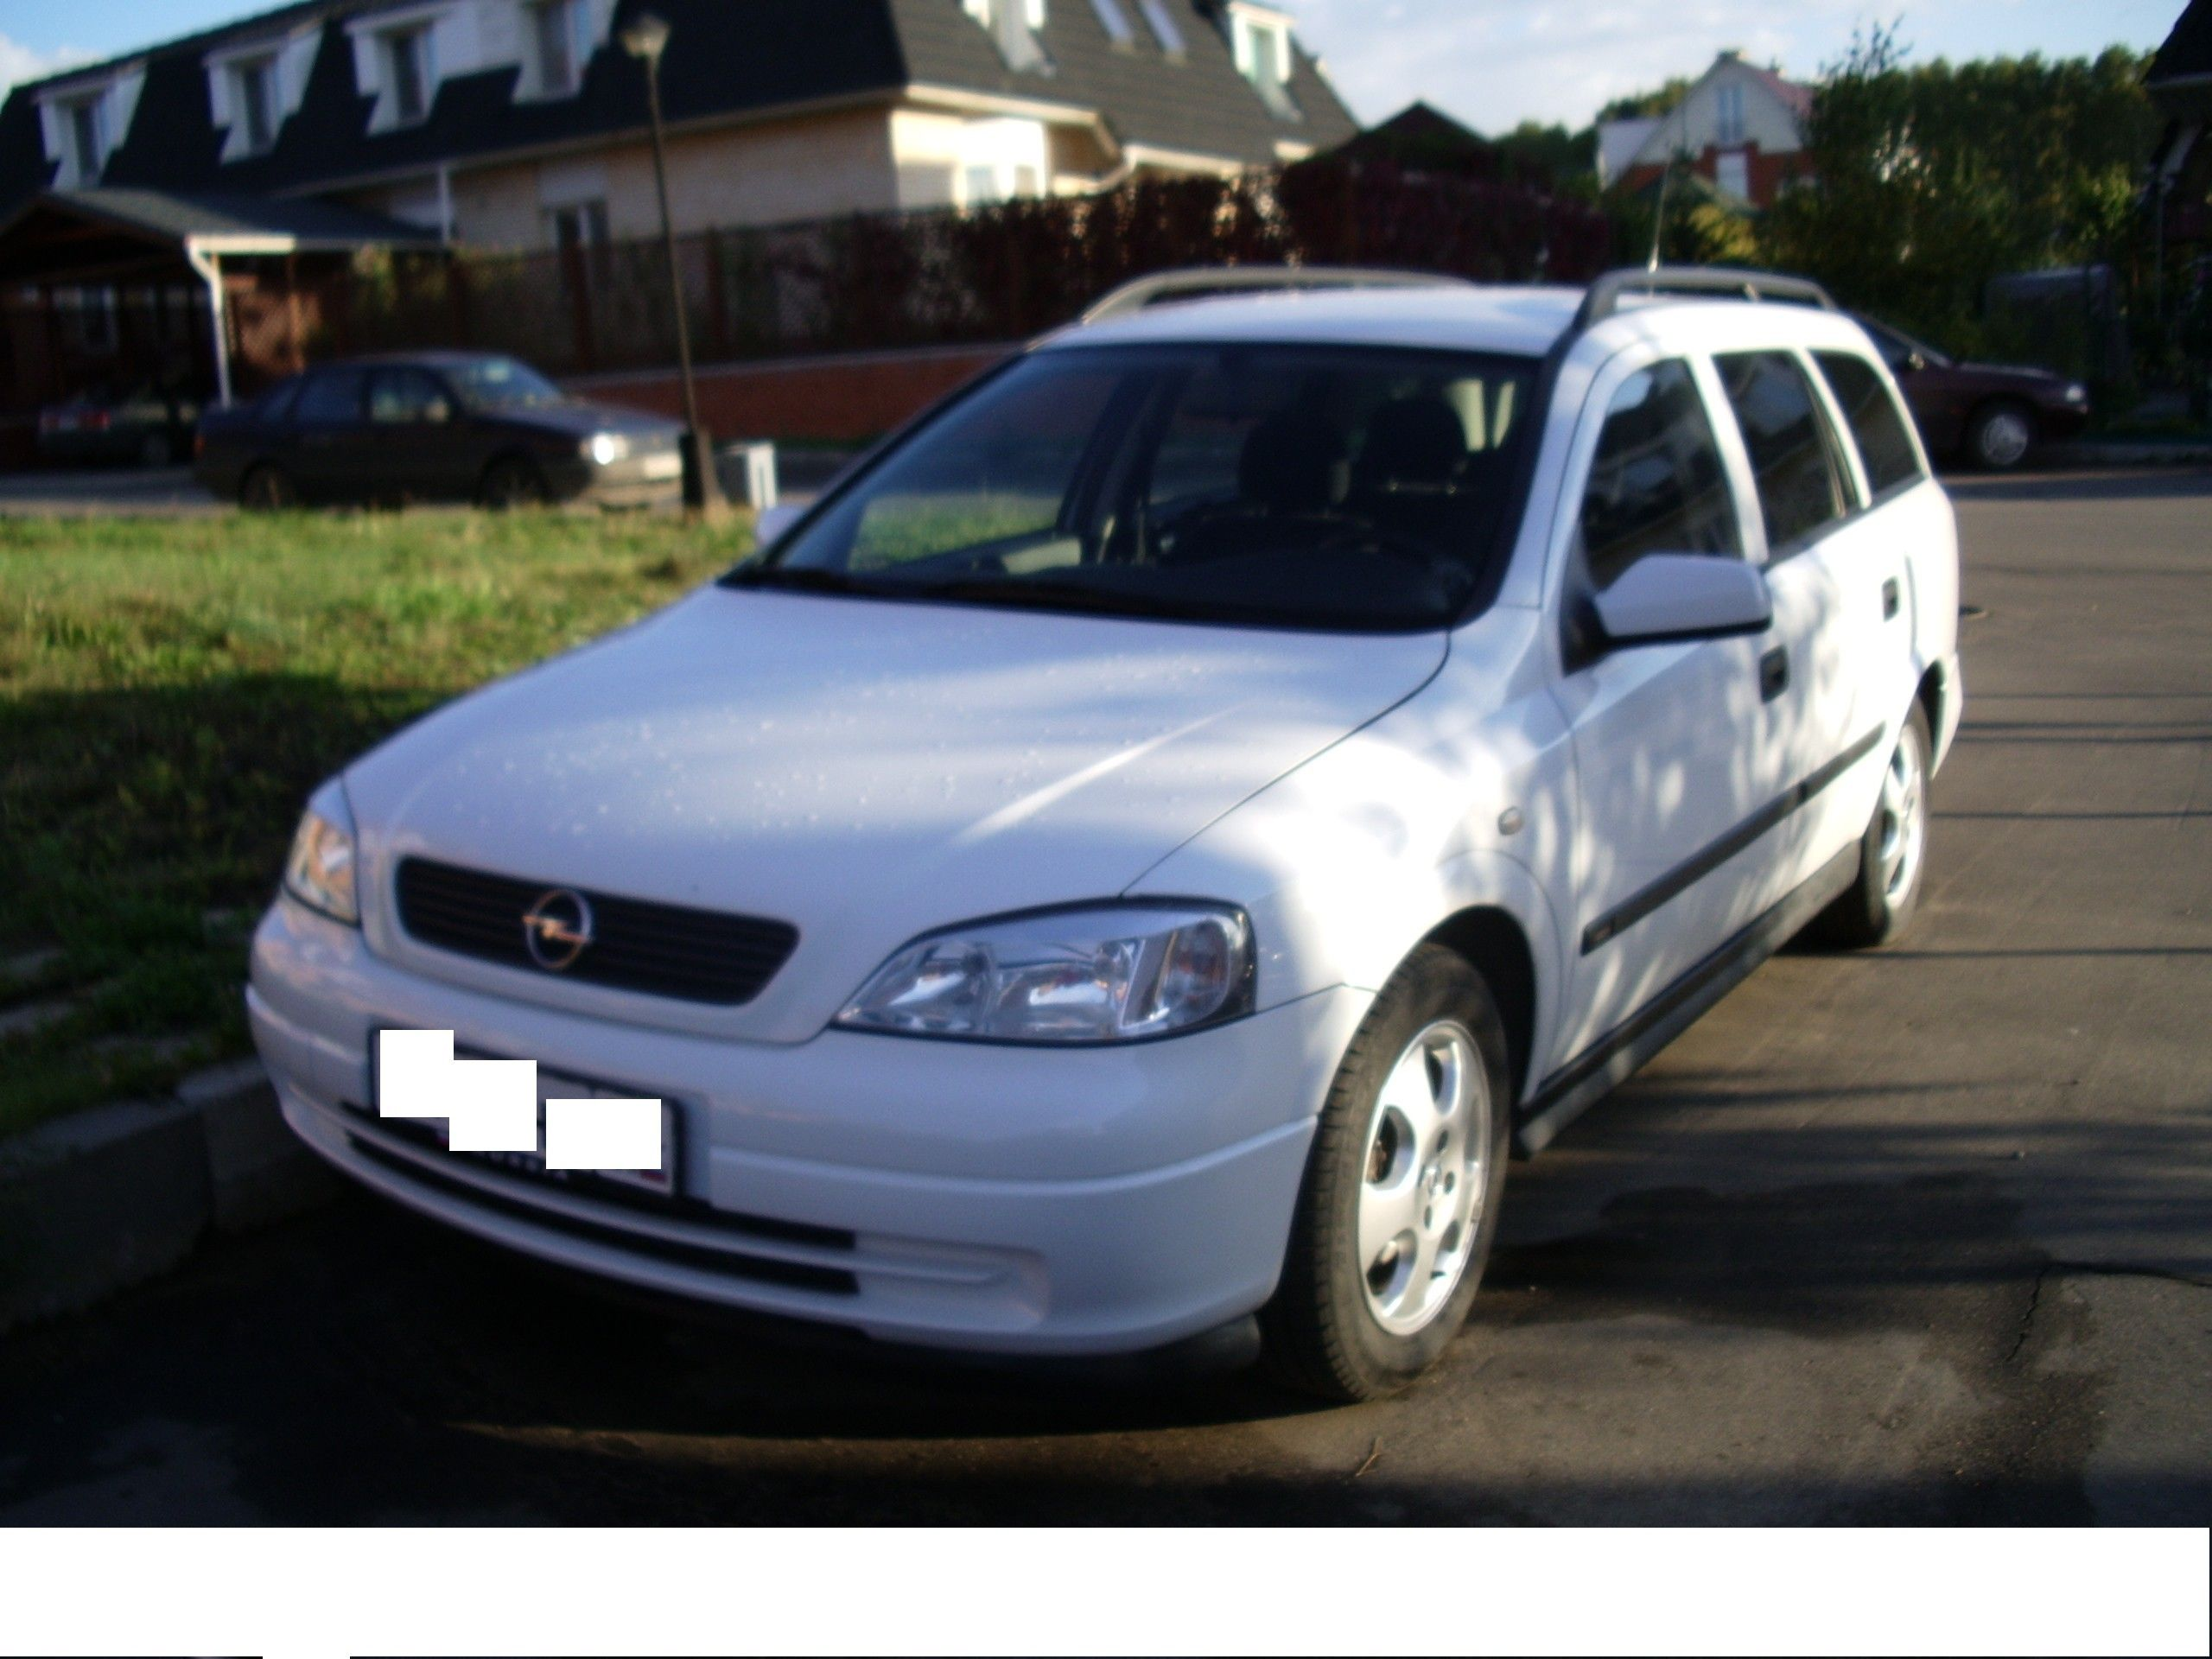 1999 opel astra caravan pictures 1cc gasoline ff manual for sale rh cars directory net opel astra g 1999 manual opel astra 1999 service manual pdf